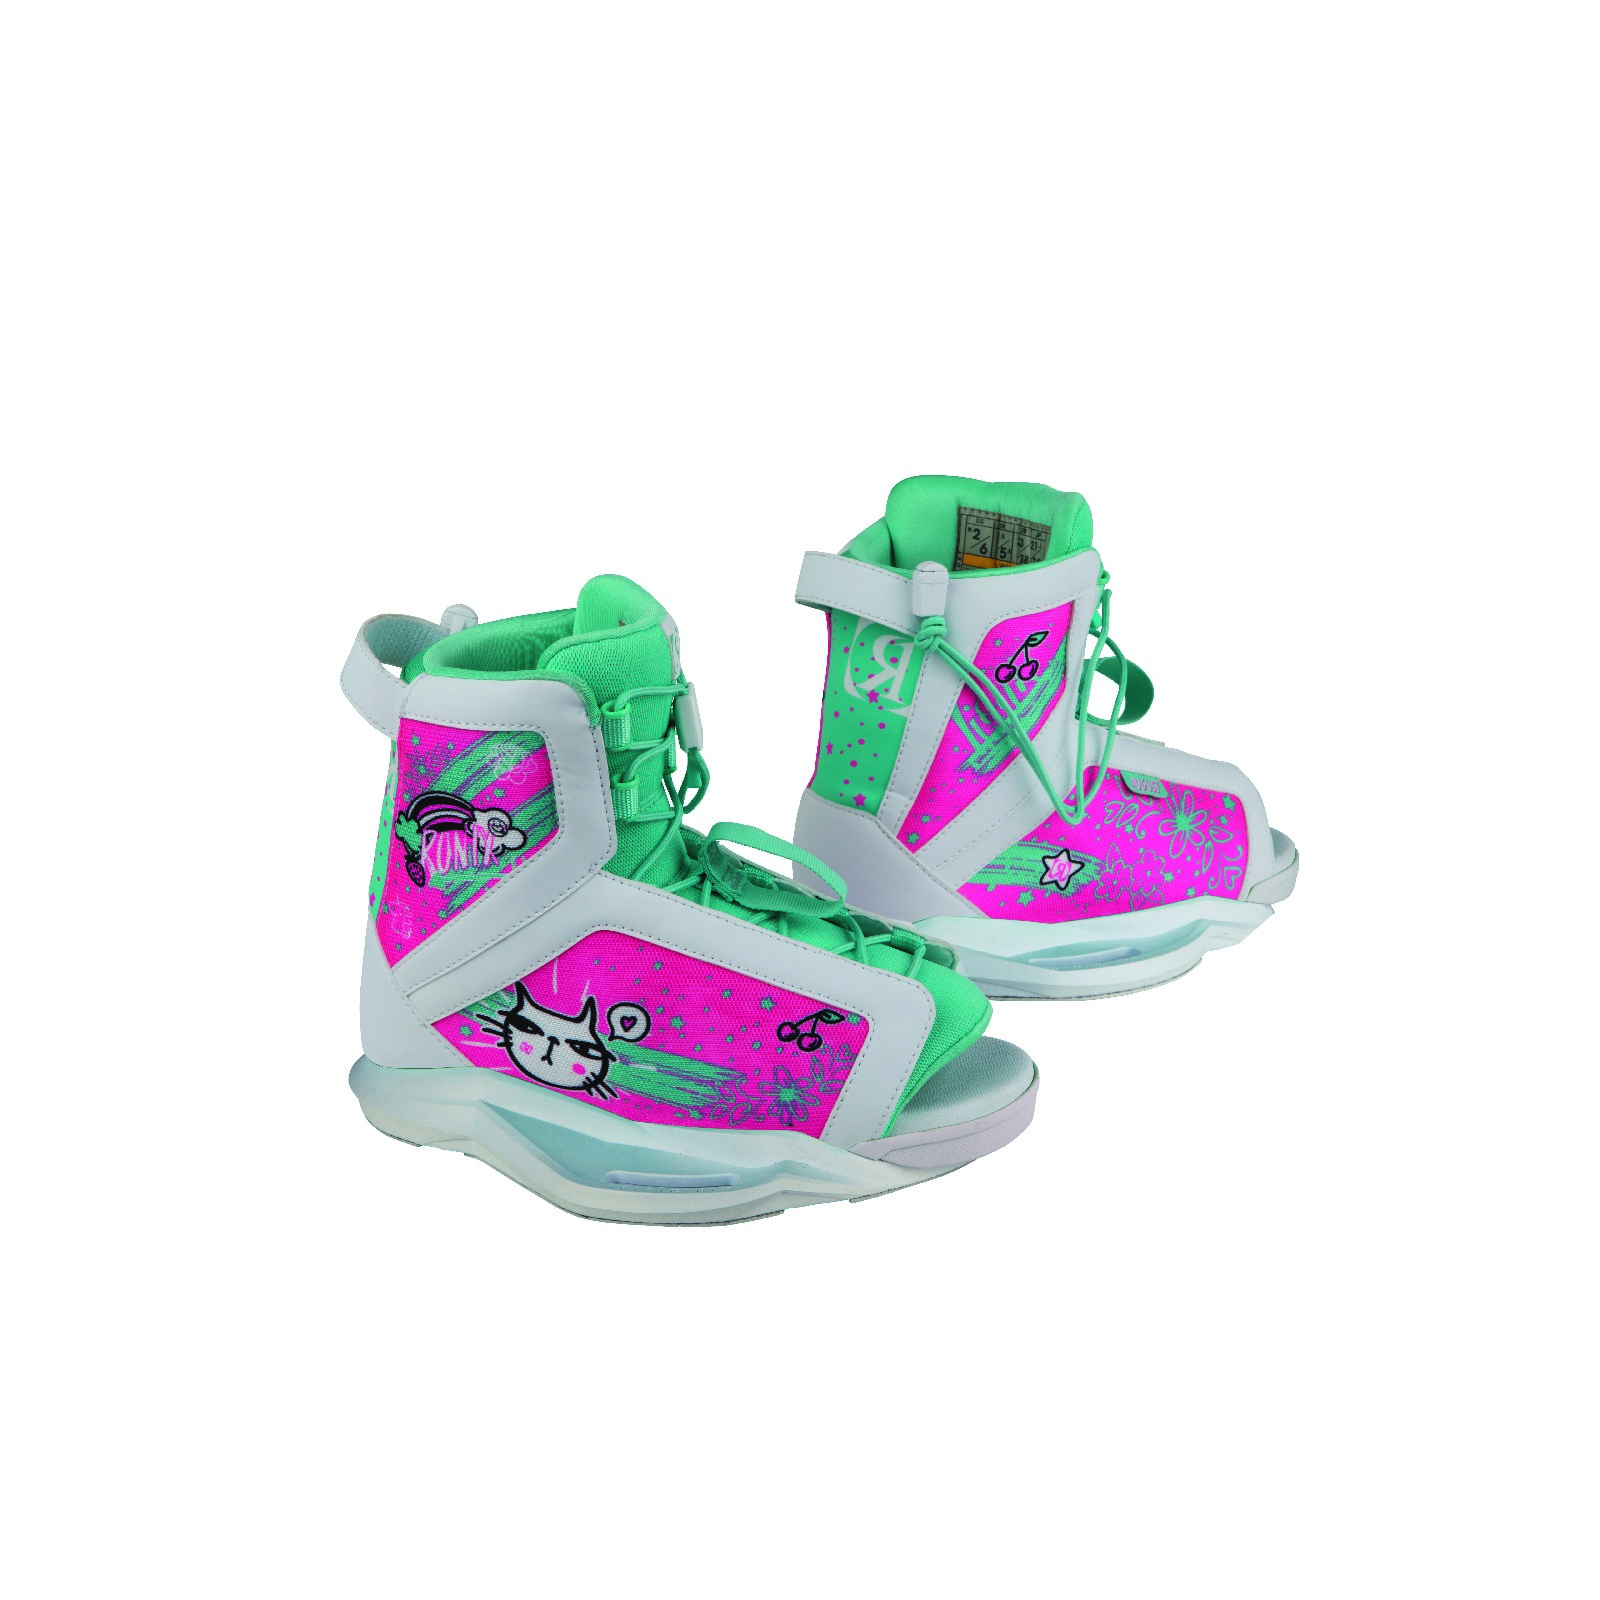 AUGUST - TURQUOISE / PINK BOOT EU 33-37/US 2-6 RONIX 2019